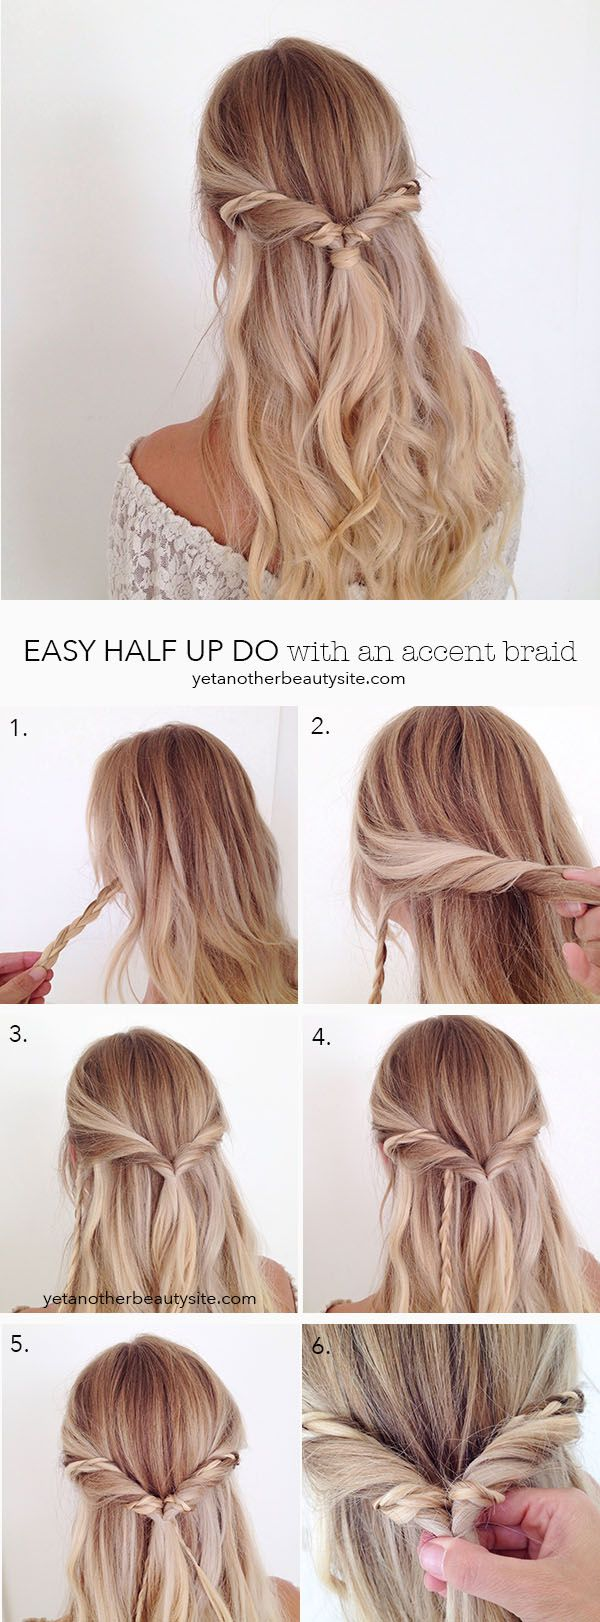 easy hair tutorial: half up do with an accent braid, such a